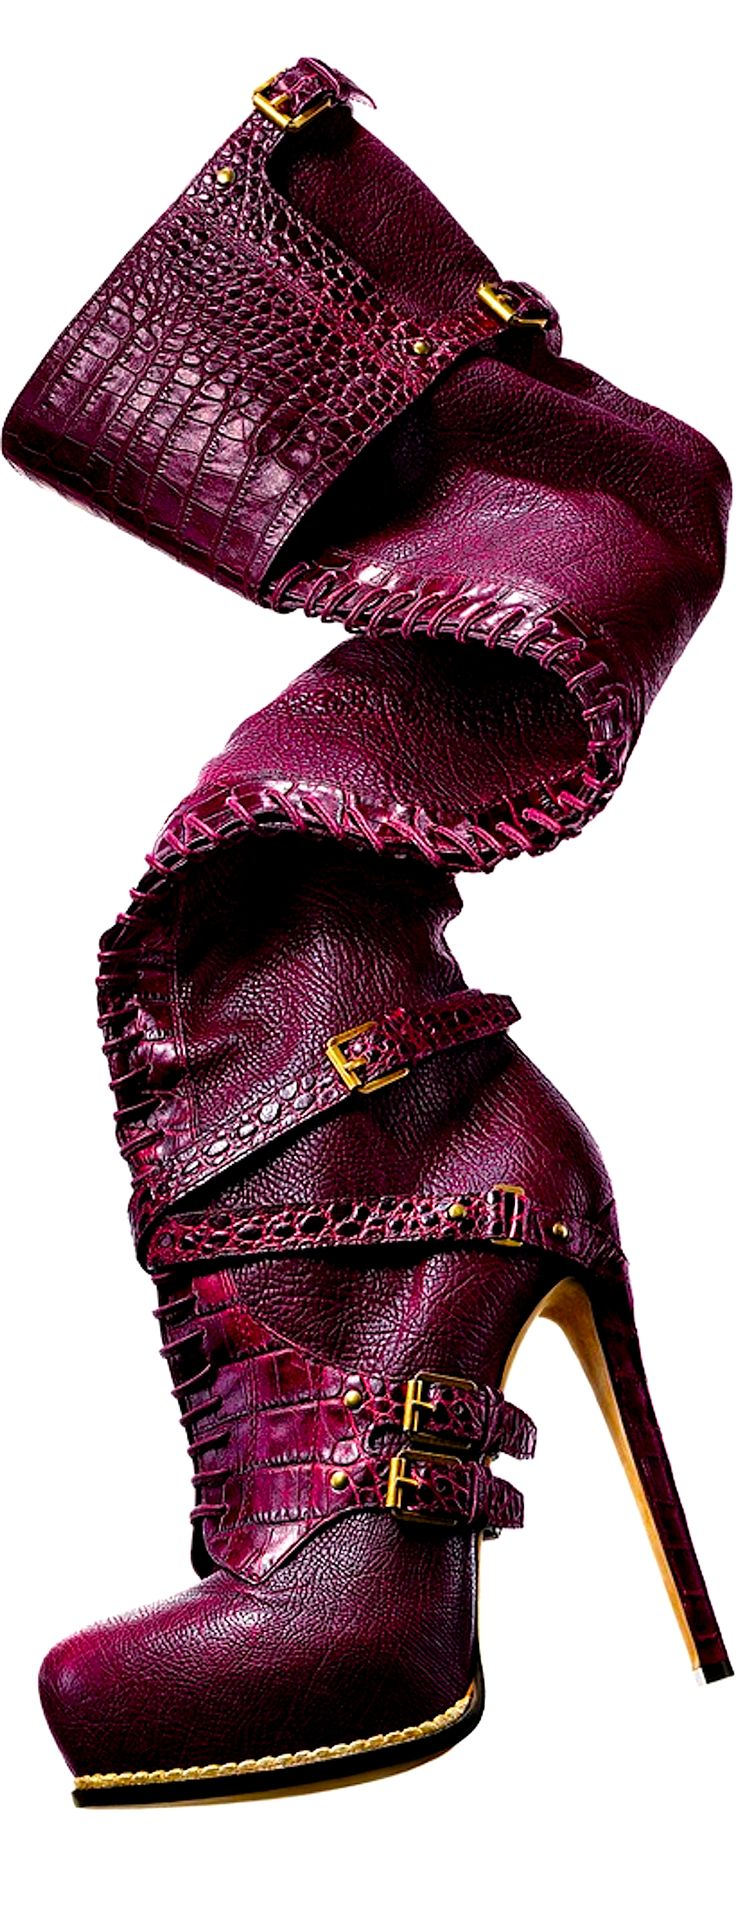 Purple boots by Christian Dior